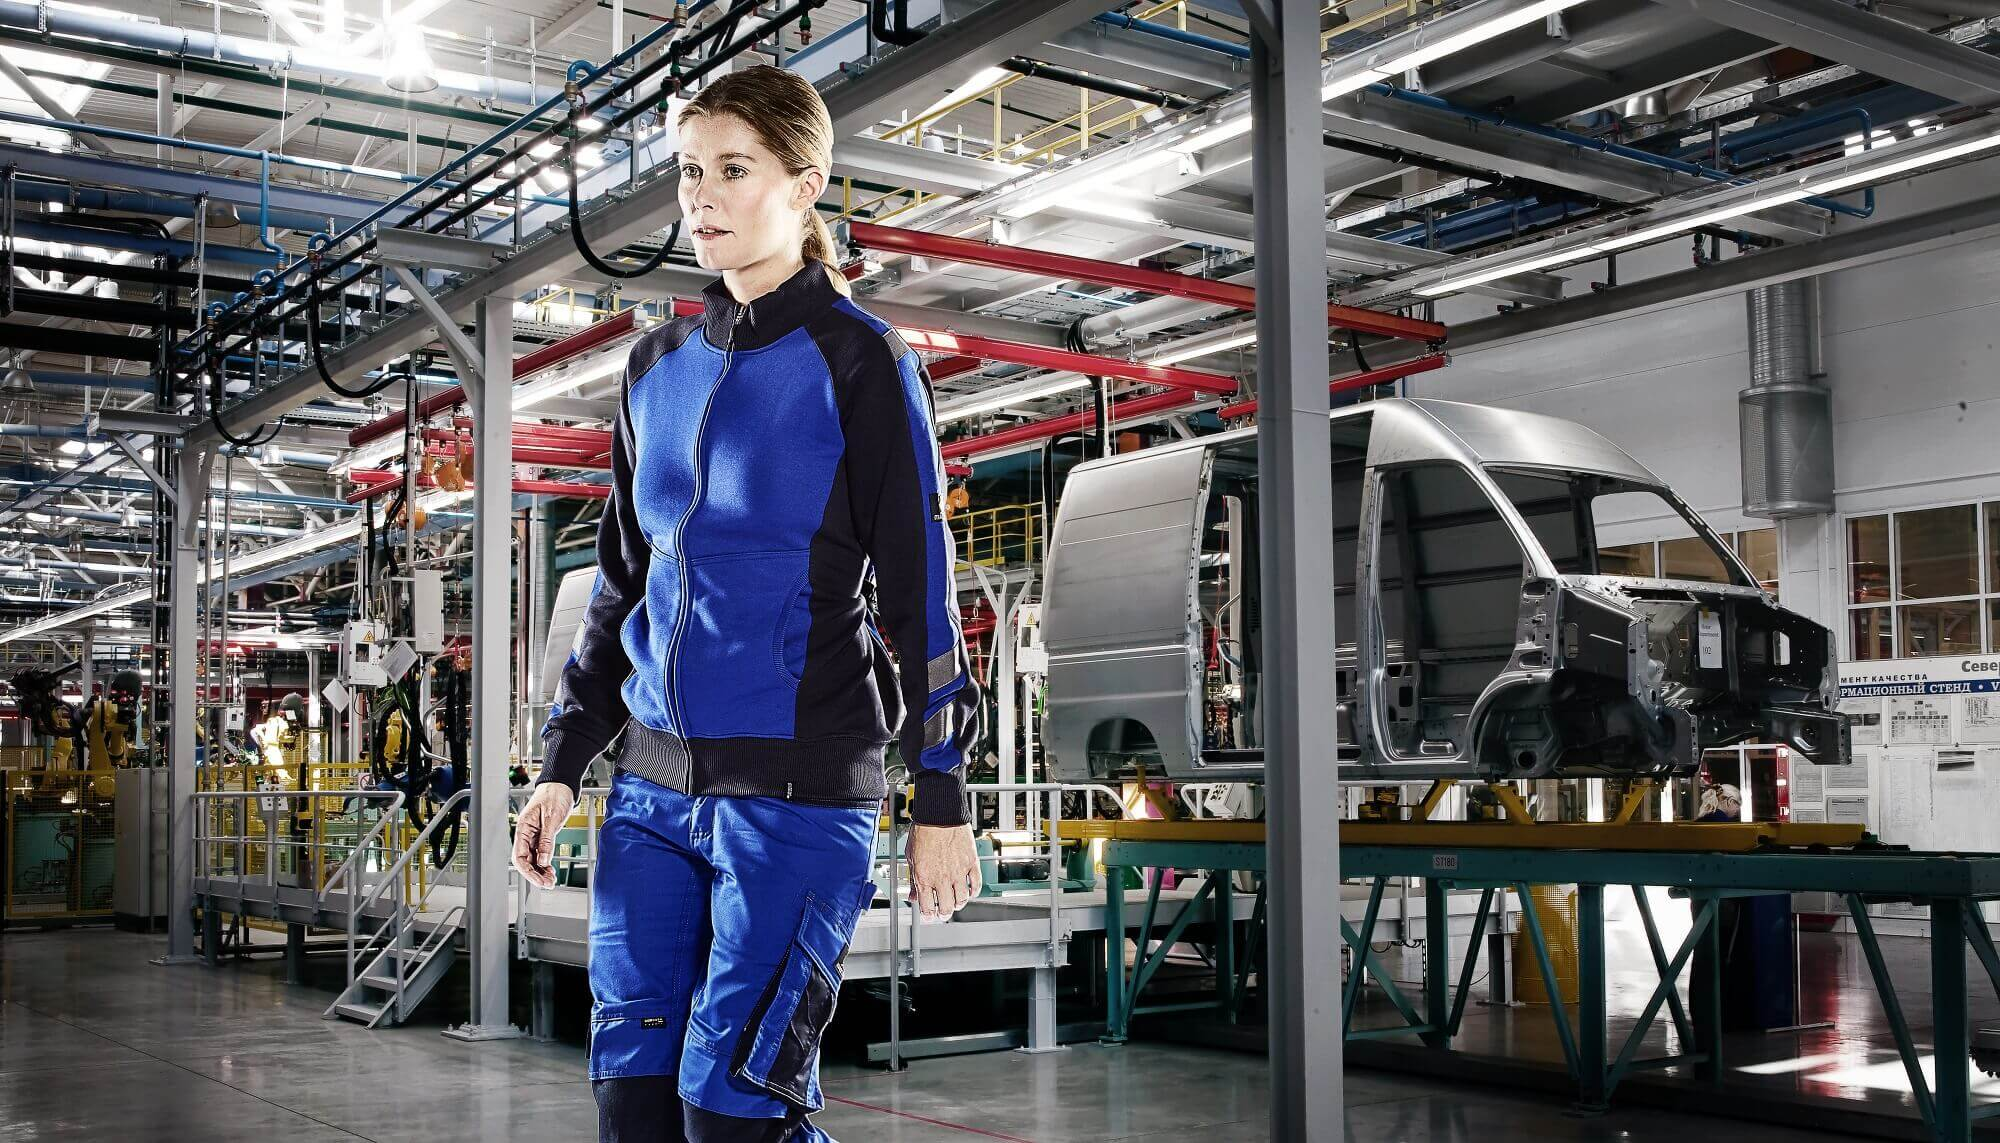 Royal blue - Zipped Jumper & Work Trousers - Woman - MASCOT® UNIQUE Environment